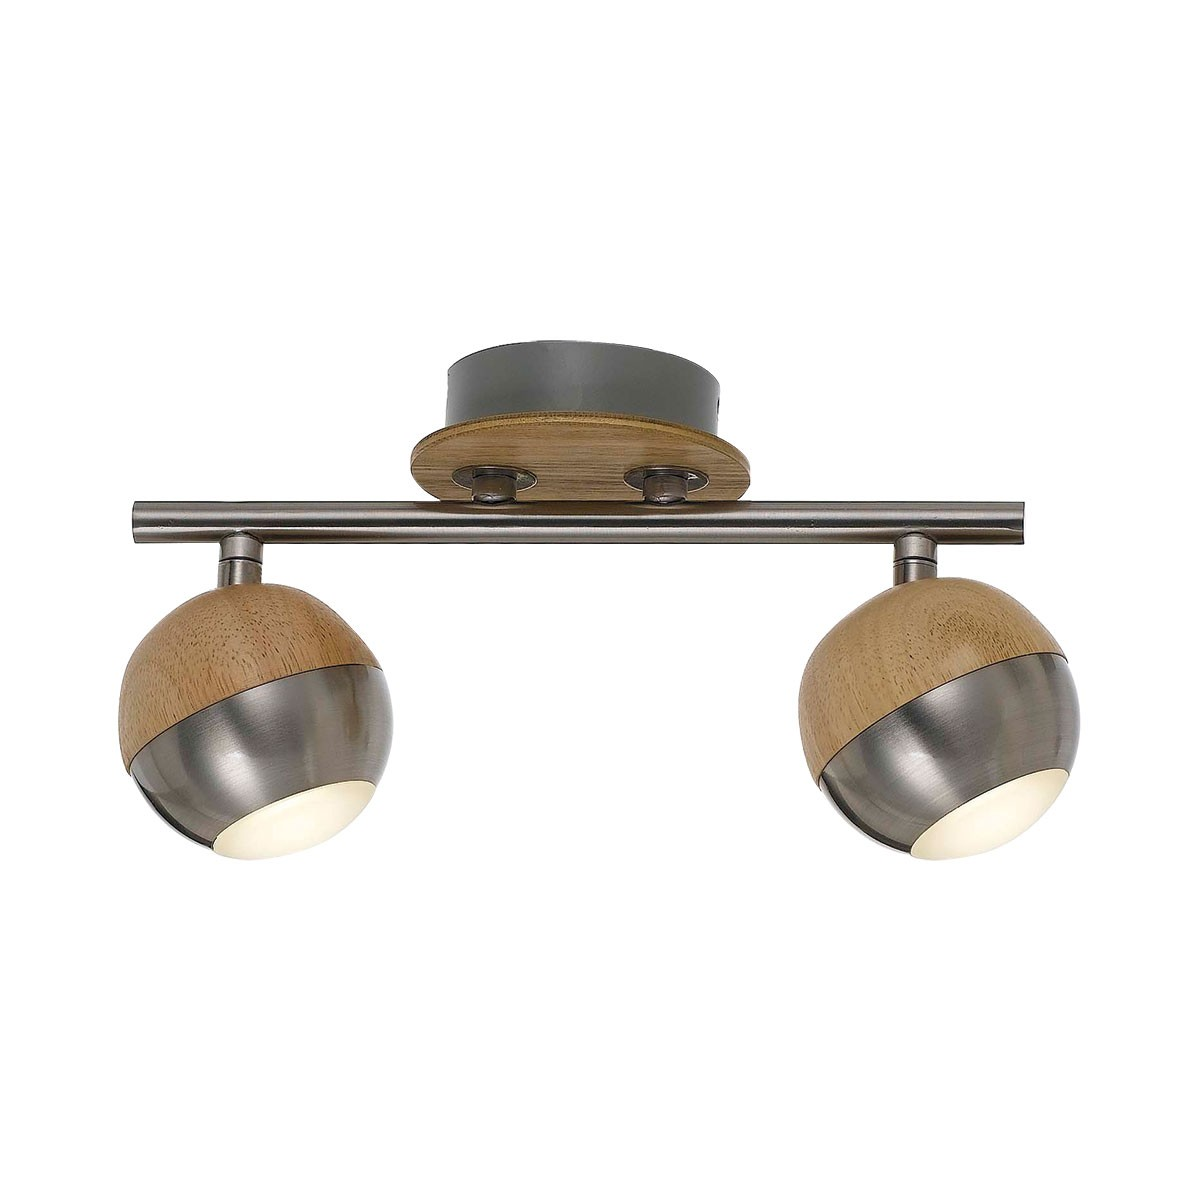 Kuran LED Bar Spotlight, 2 Light